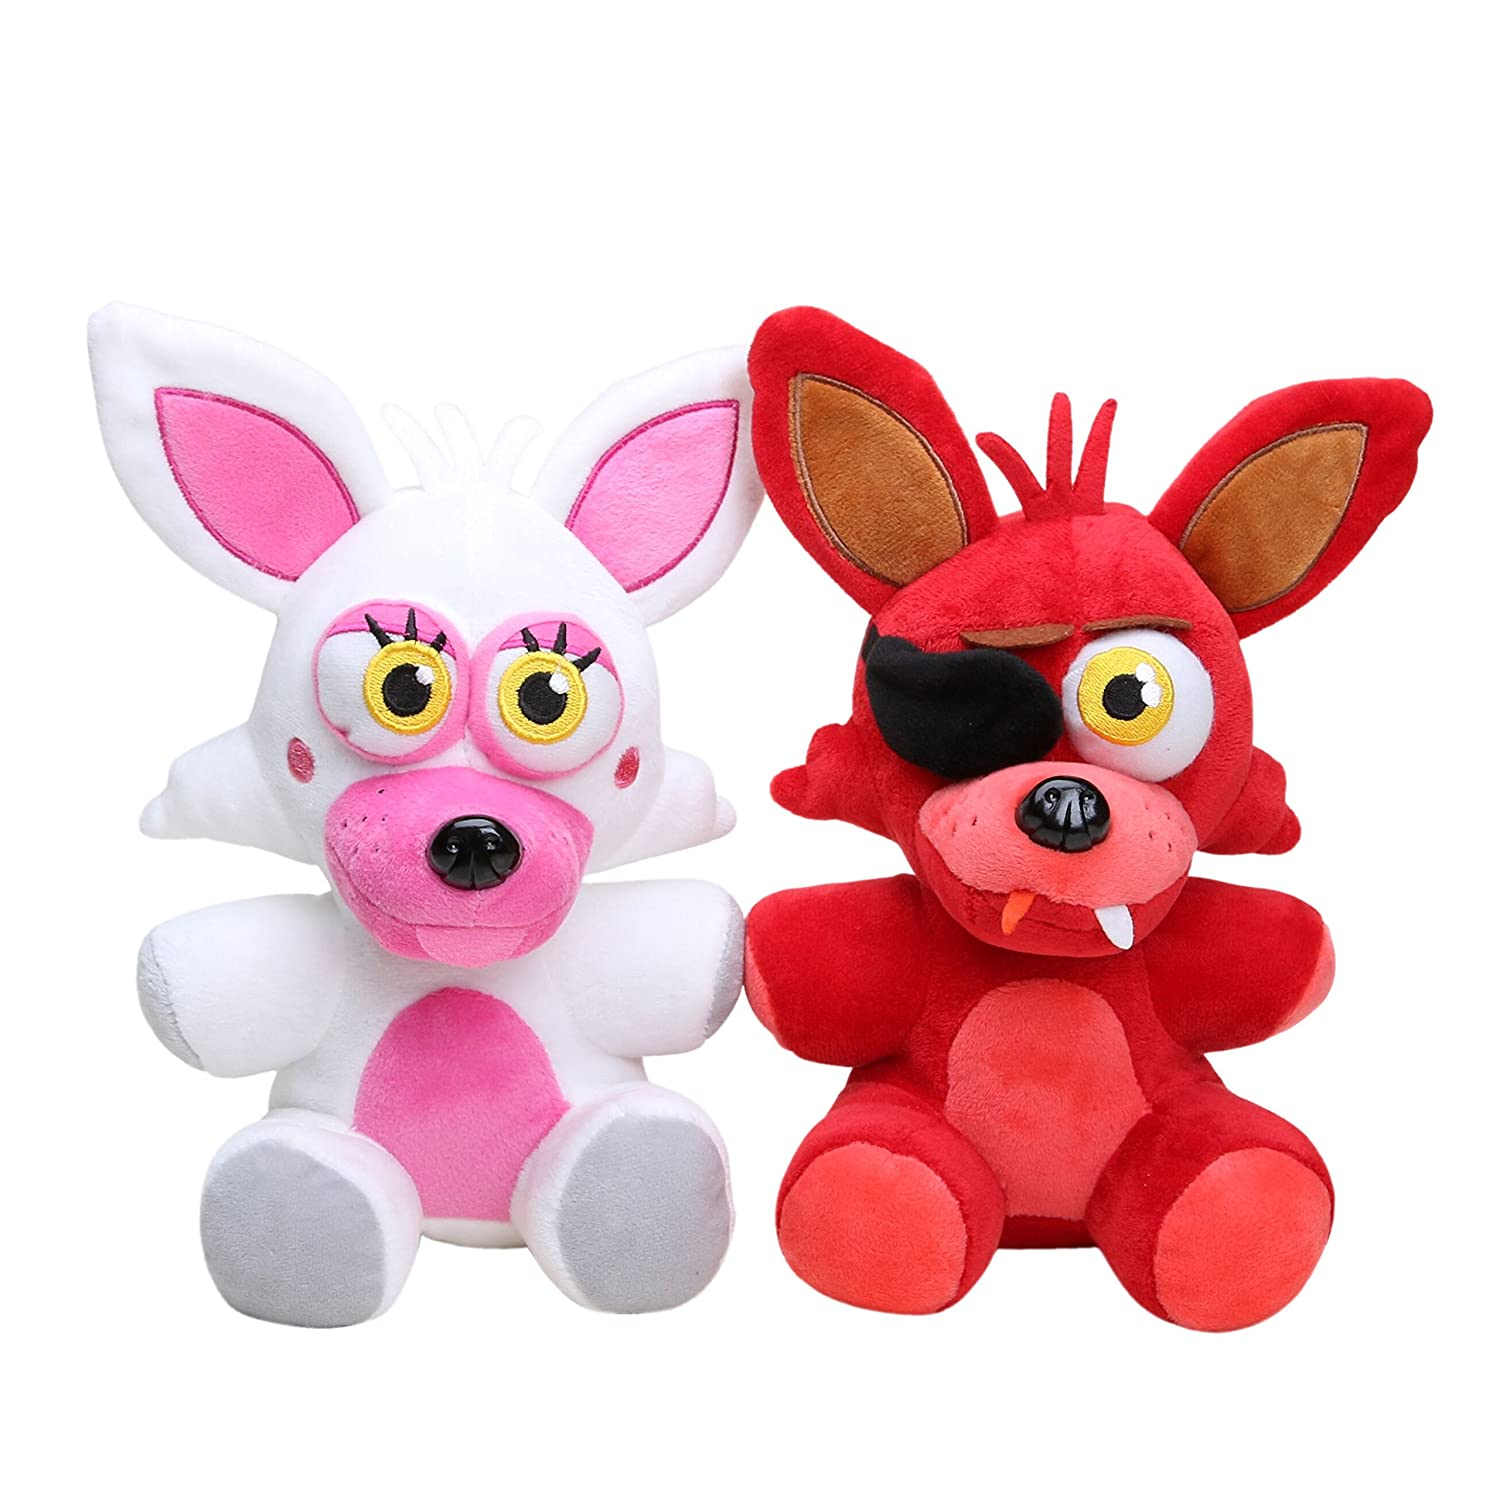 Five Nights at Freddy's Mangle Plush & Foxy Plush set of 2, 10inch